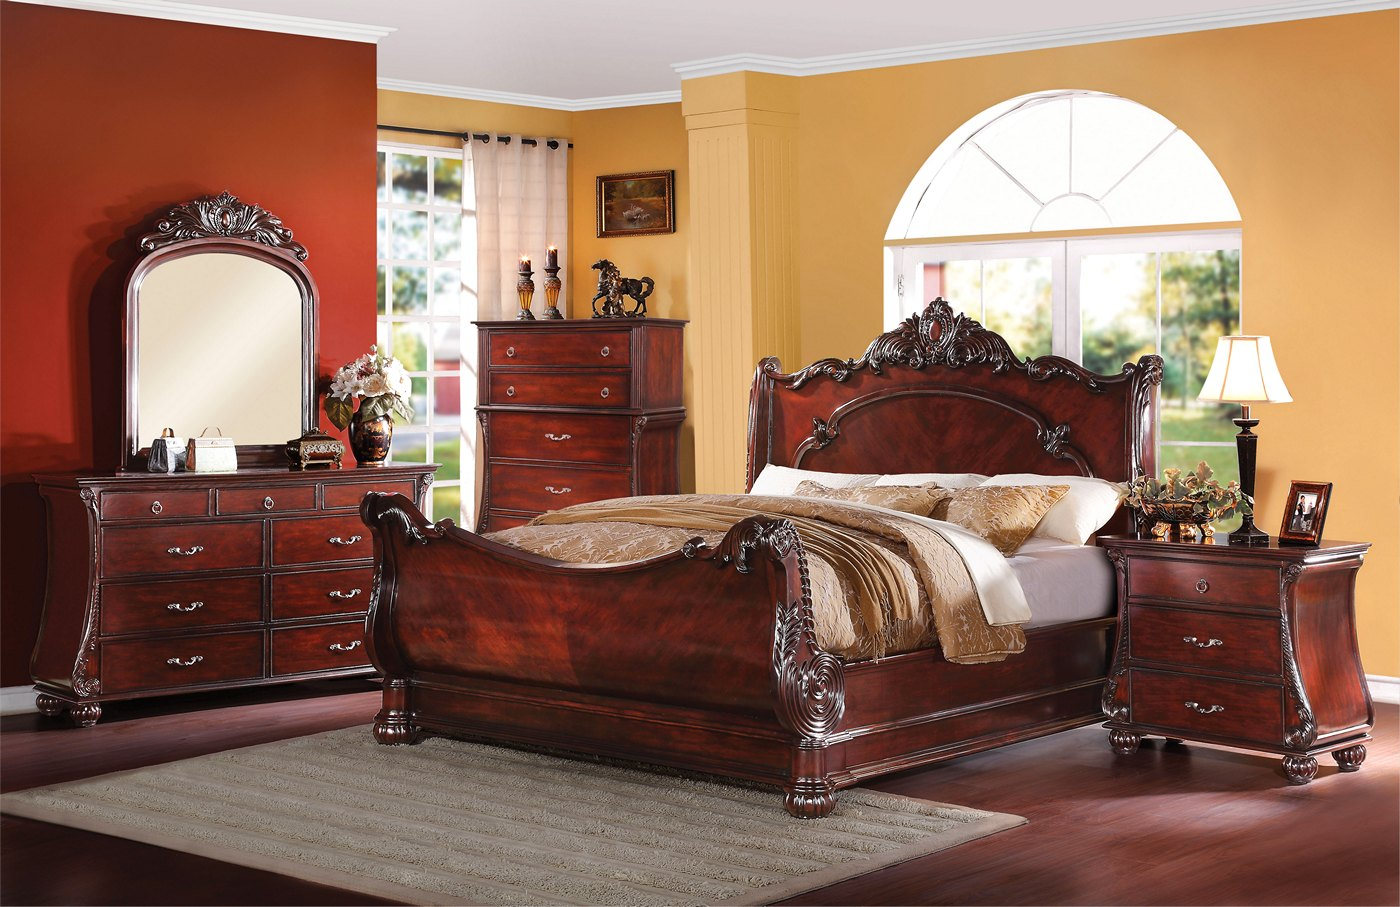 Adonias Classic Ornate 4 Pc Queen Sleigh Bed Set In Cherry